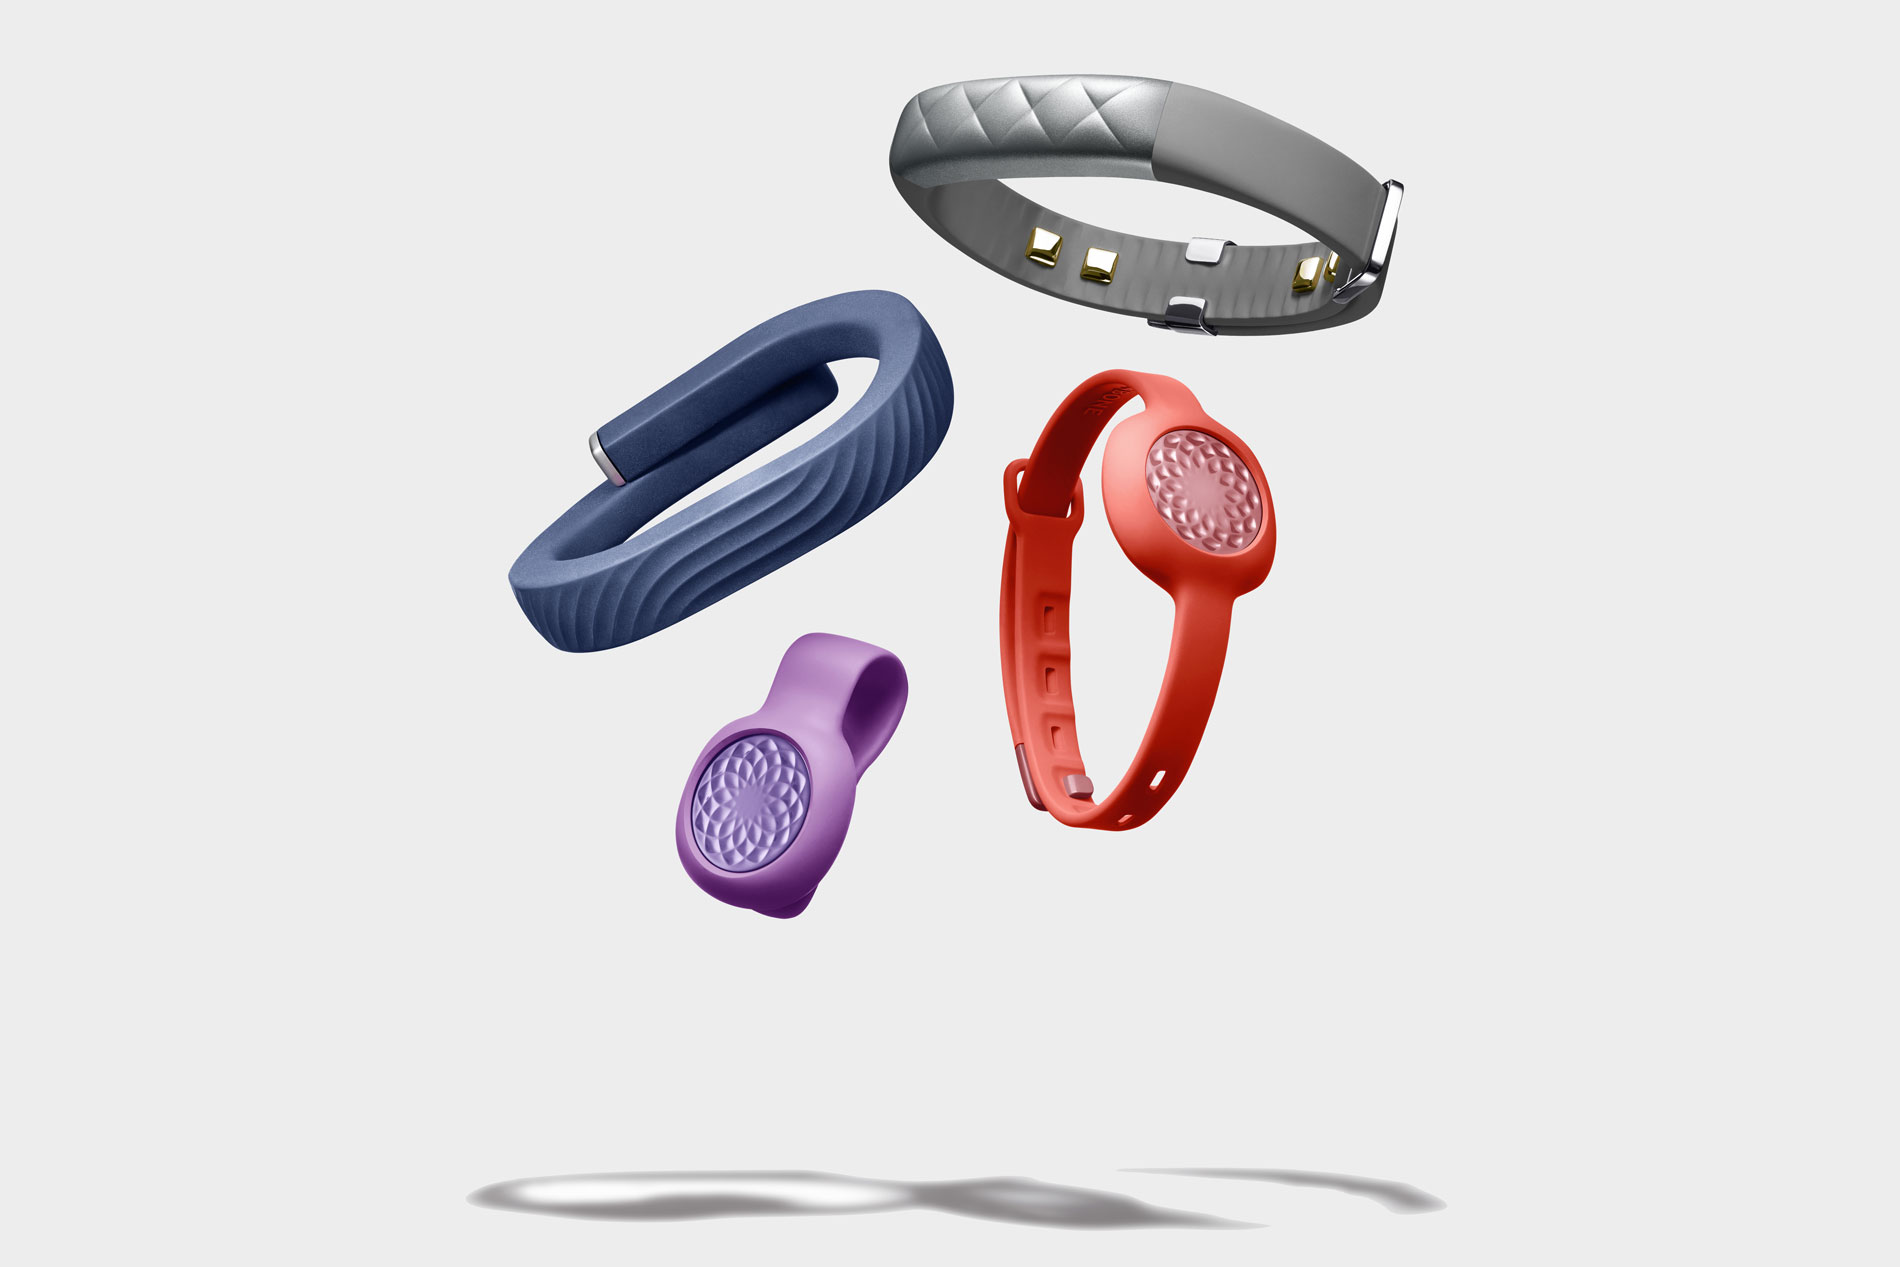 Jawbone's demise heralds the end of the wearables industry